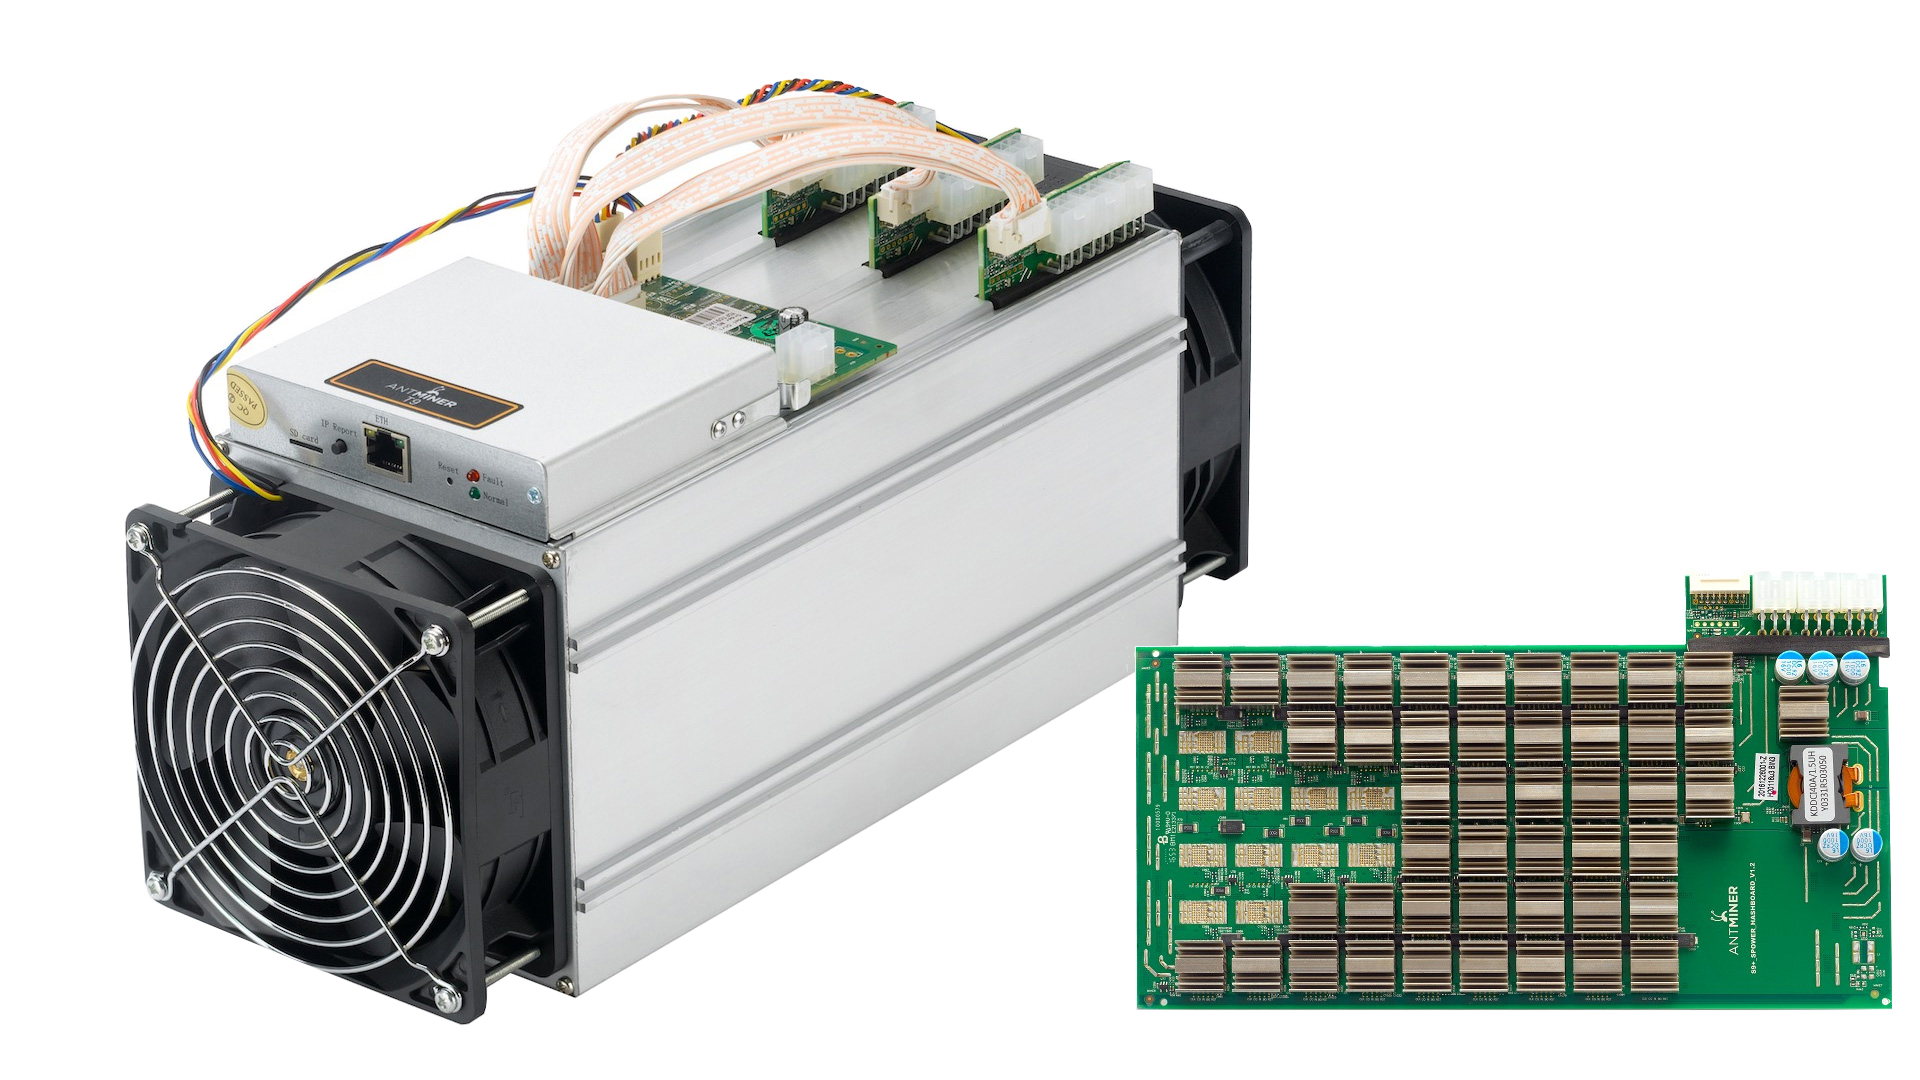 AntMiner T9